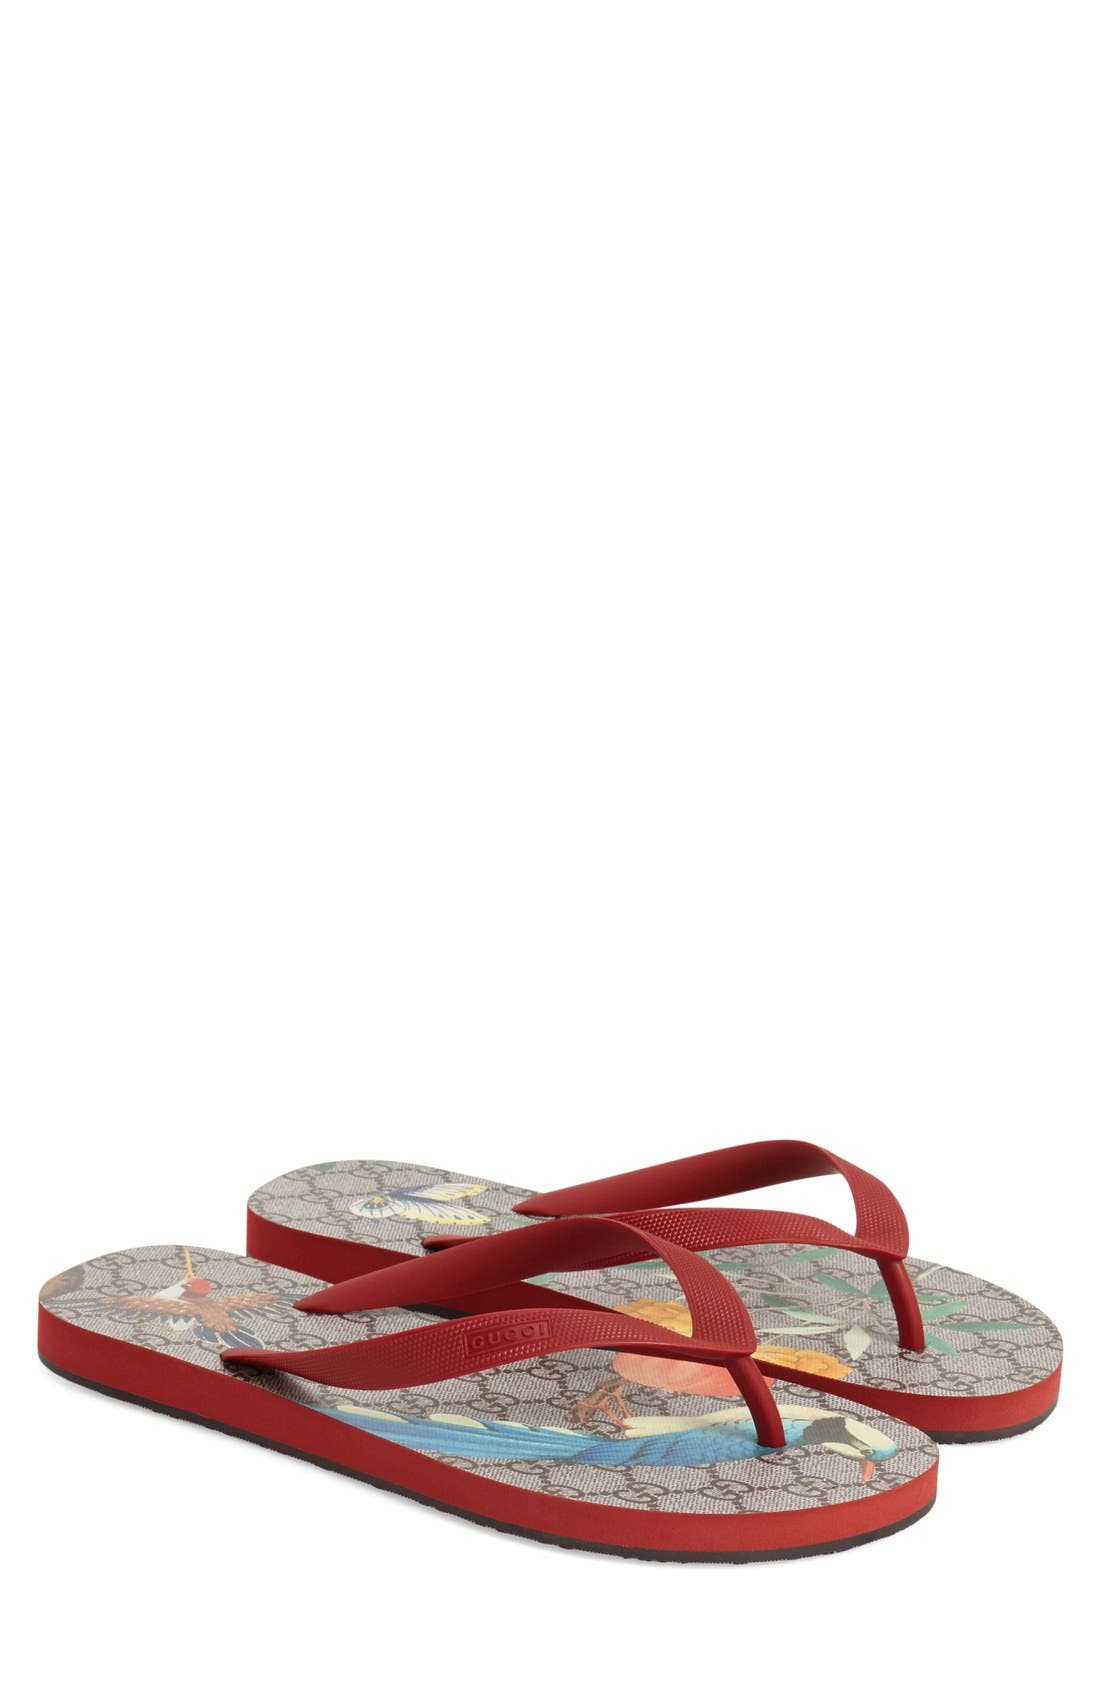 Alternate Image 1 Selected - Gucci 'Bedlam' Flip Flop (Men)